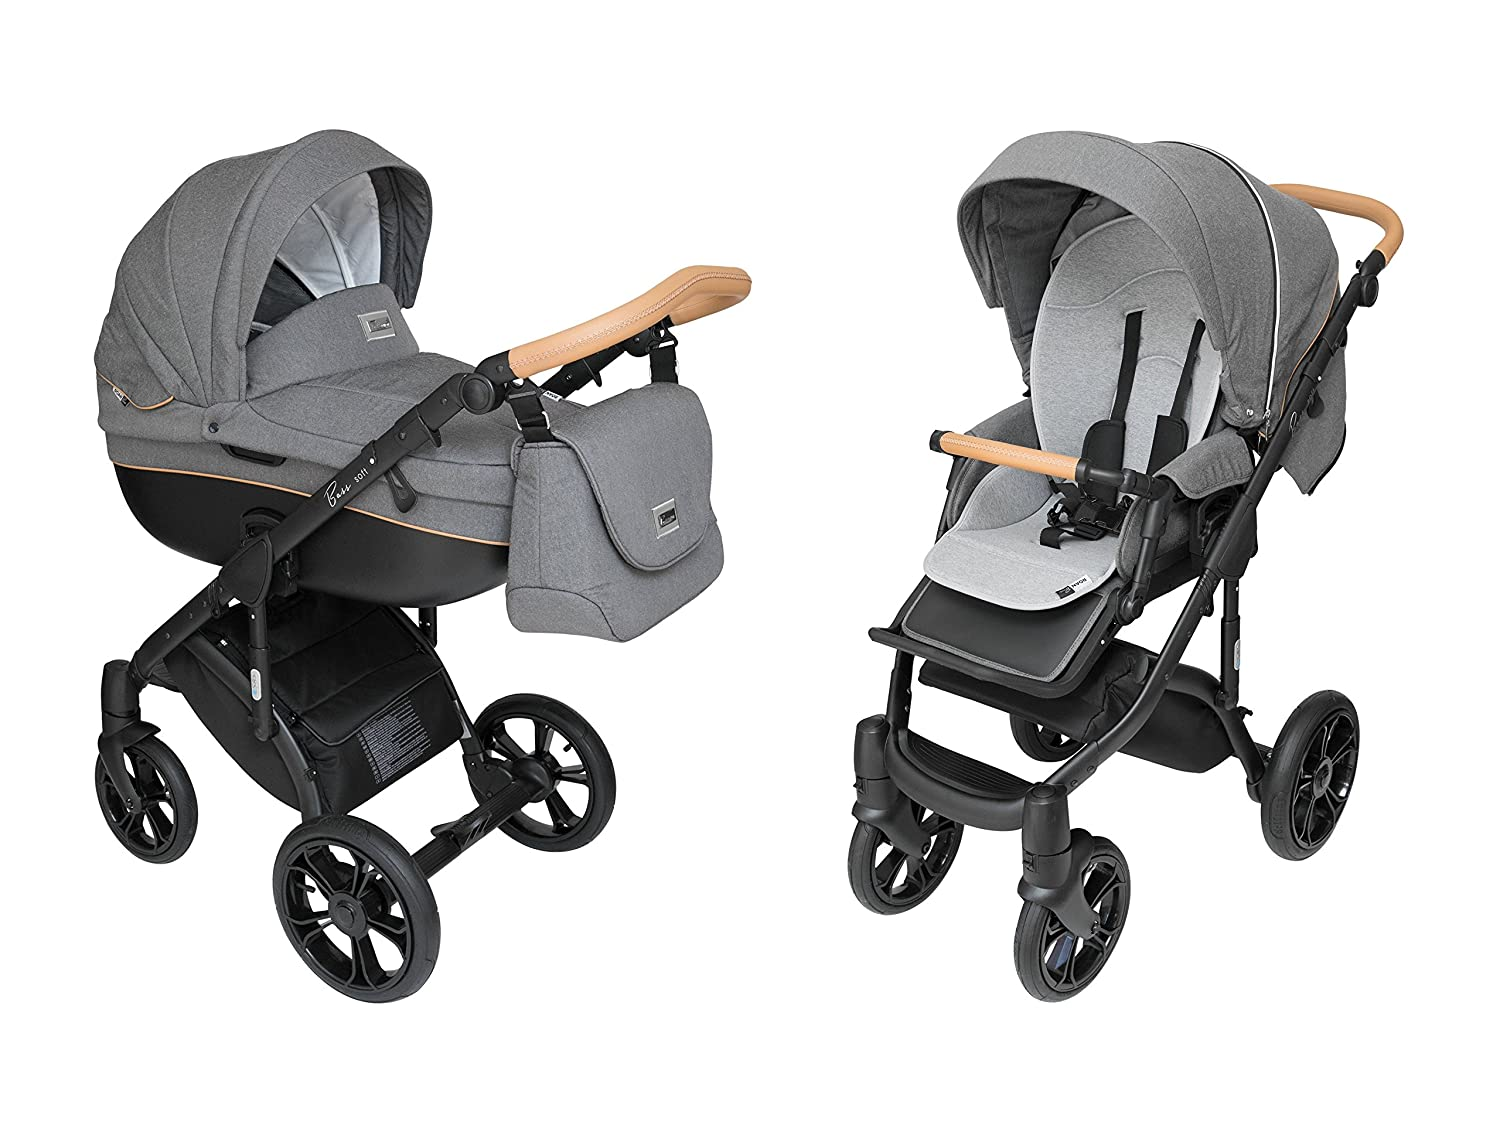 ROAN BASS Soft Stroller 2-in-1 with Bassinet for Baby, Toddler s Five Point Safety Reversible Seat, Swivel Air-Inflated Wheels, Unique Shock Absorbing System and Great Storage Basket Black Cognac